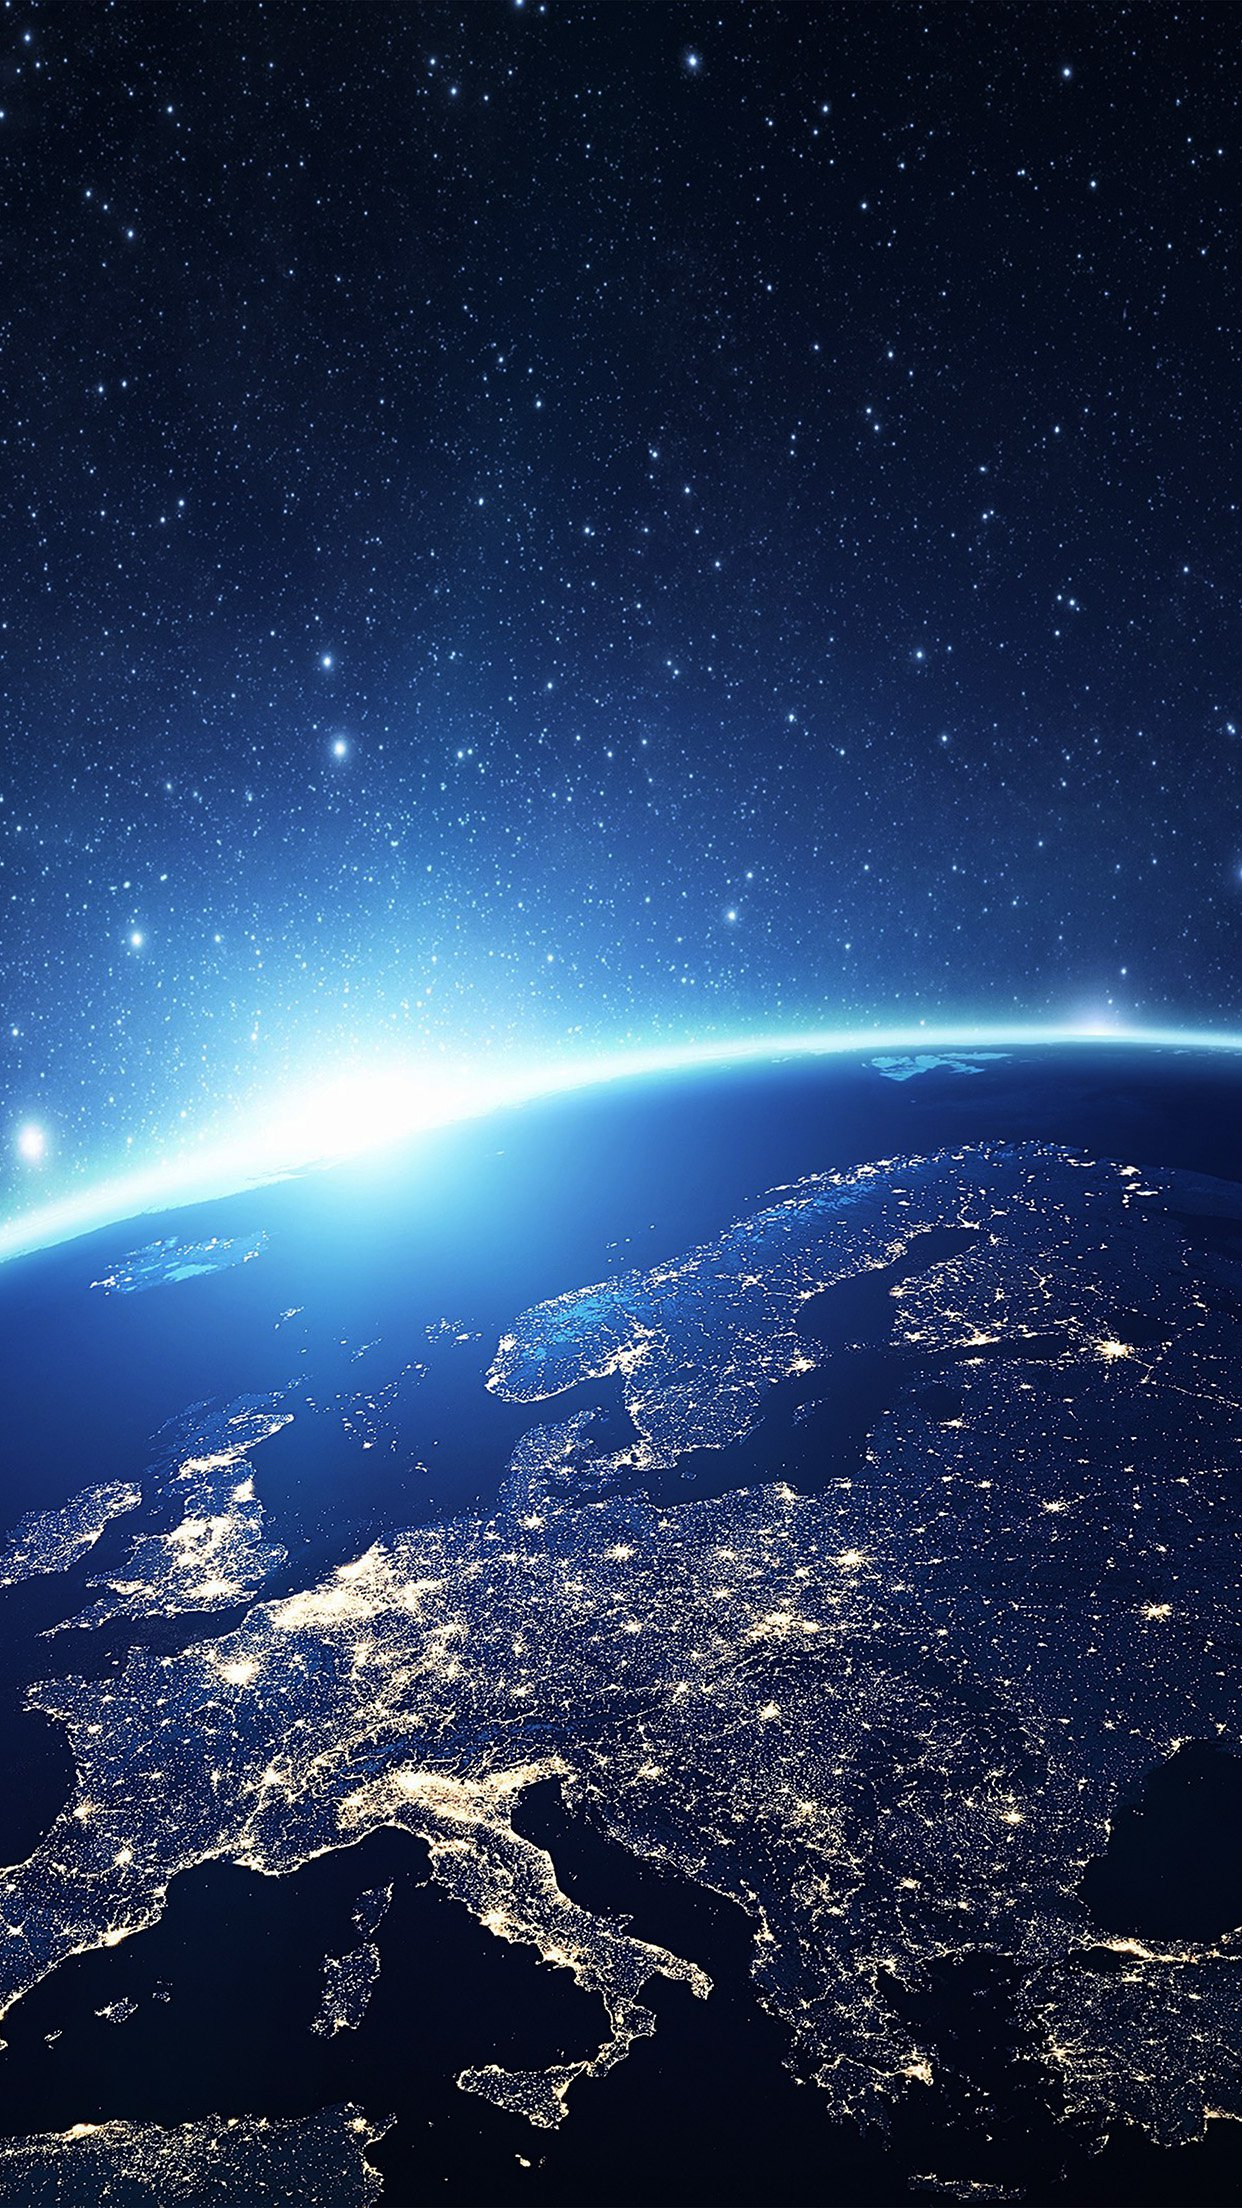 Europe Earth Blue Space Night Art Illustration Android wallpaper